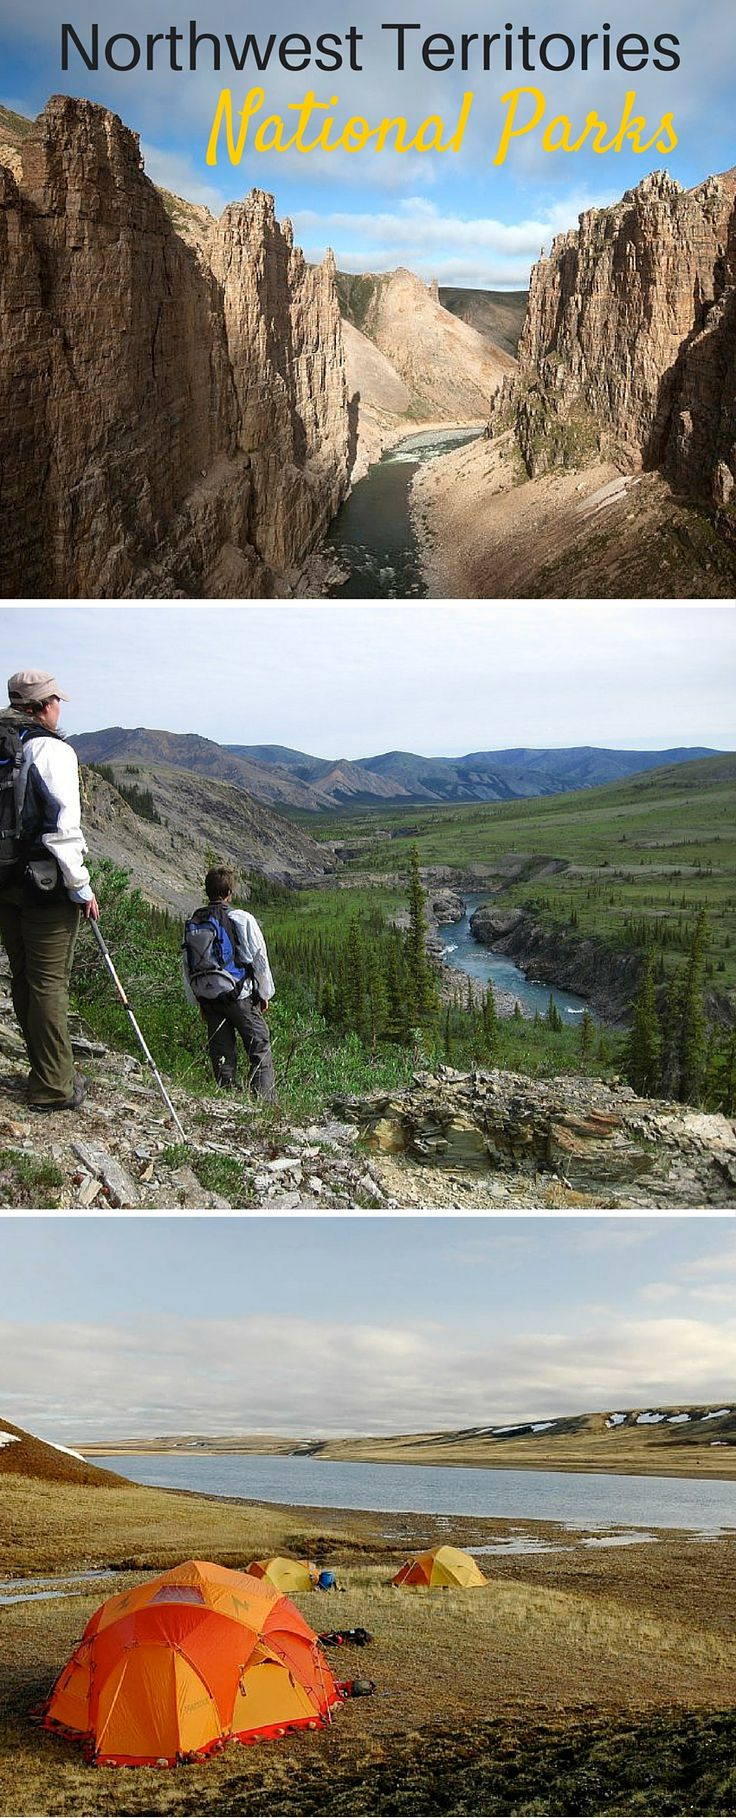 Canada's north comes alive when you visit one of these Northwest Territories national parks.